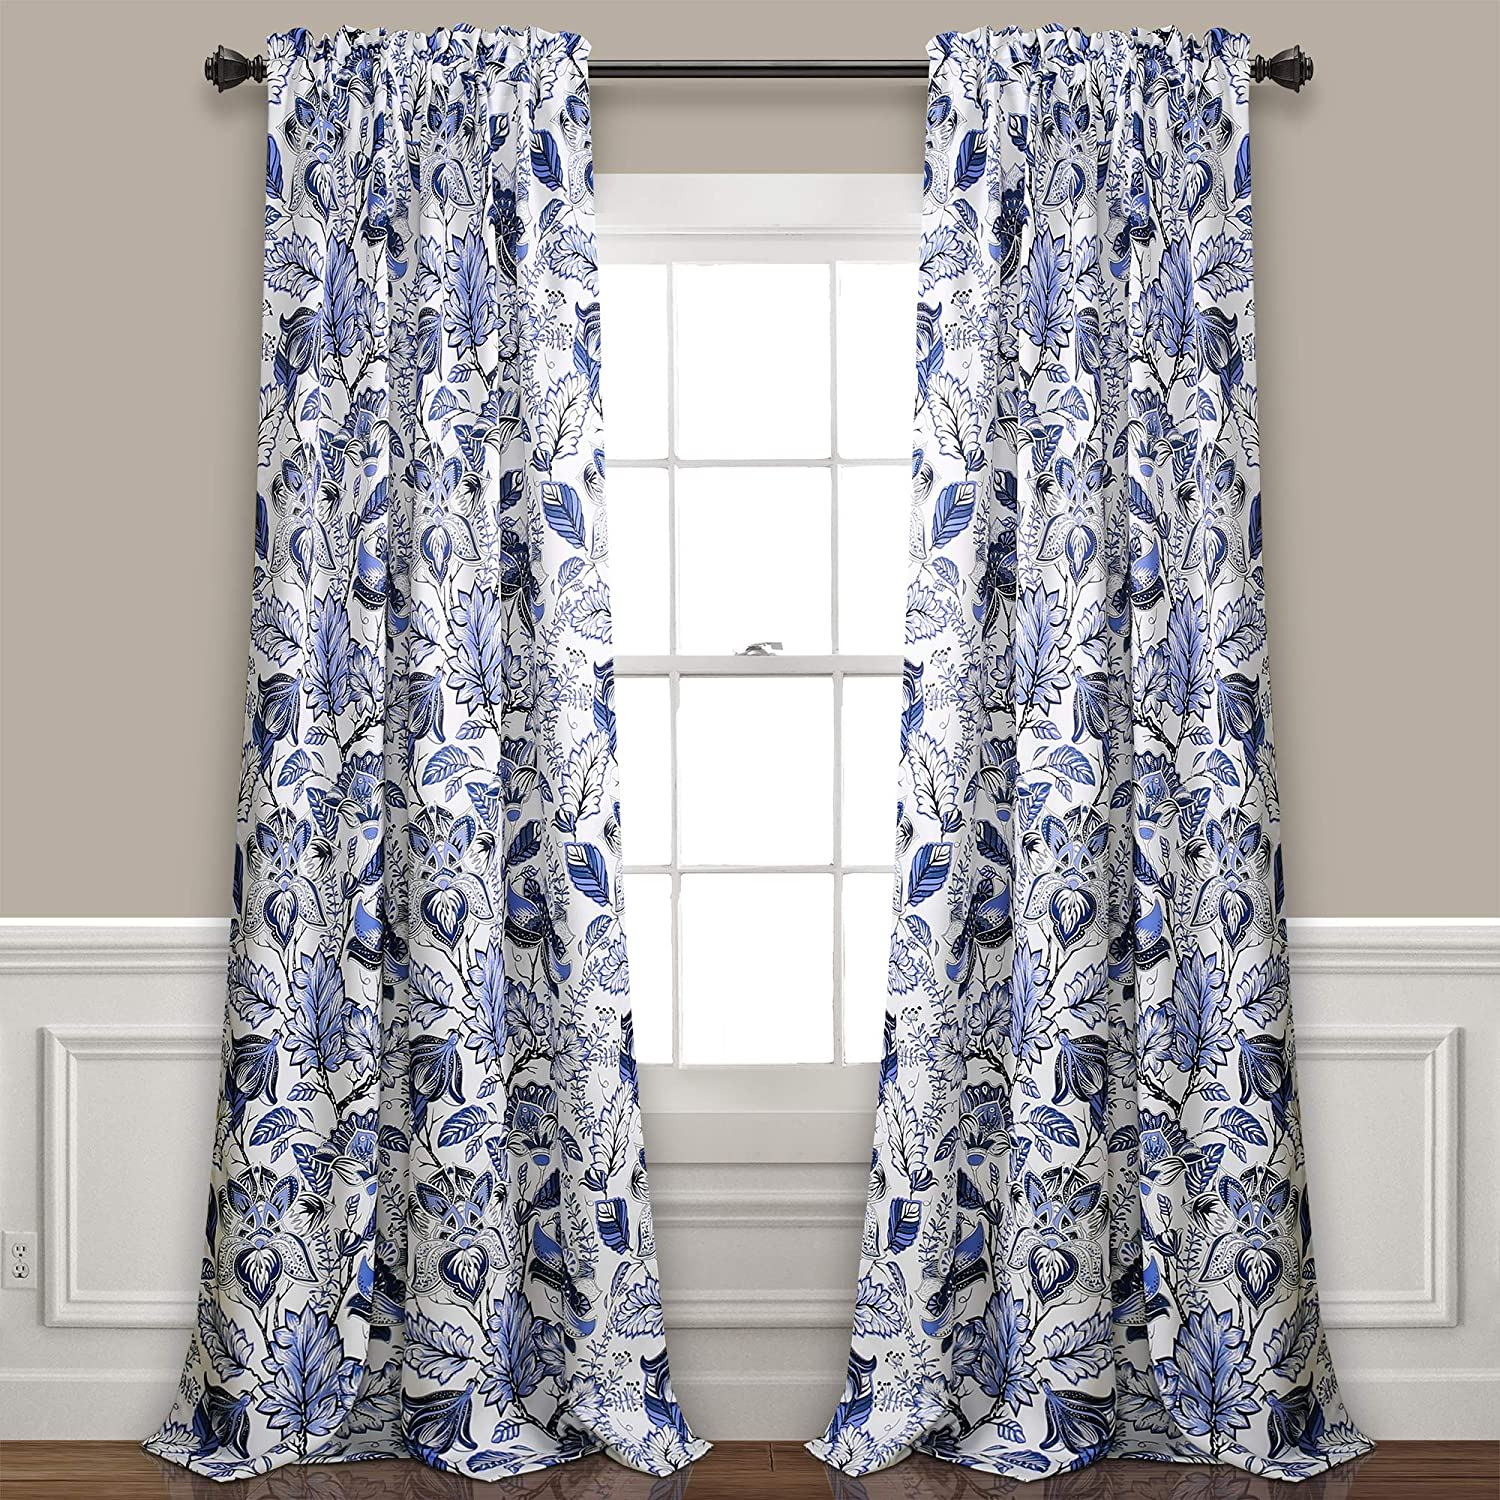 Lush Decor Cynthia Jacobean Room Darkening Window Panel Curtain Set Pair 84 L Blue 2 Count Home Kitchen